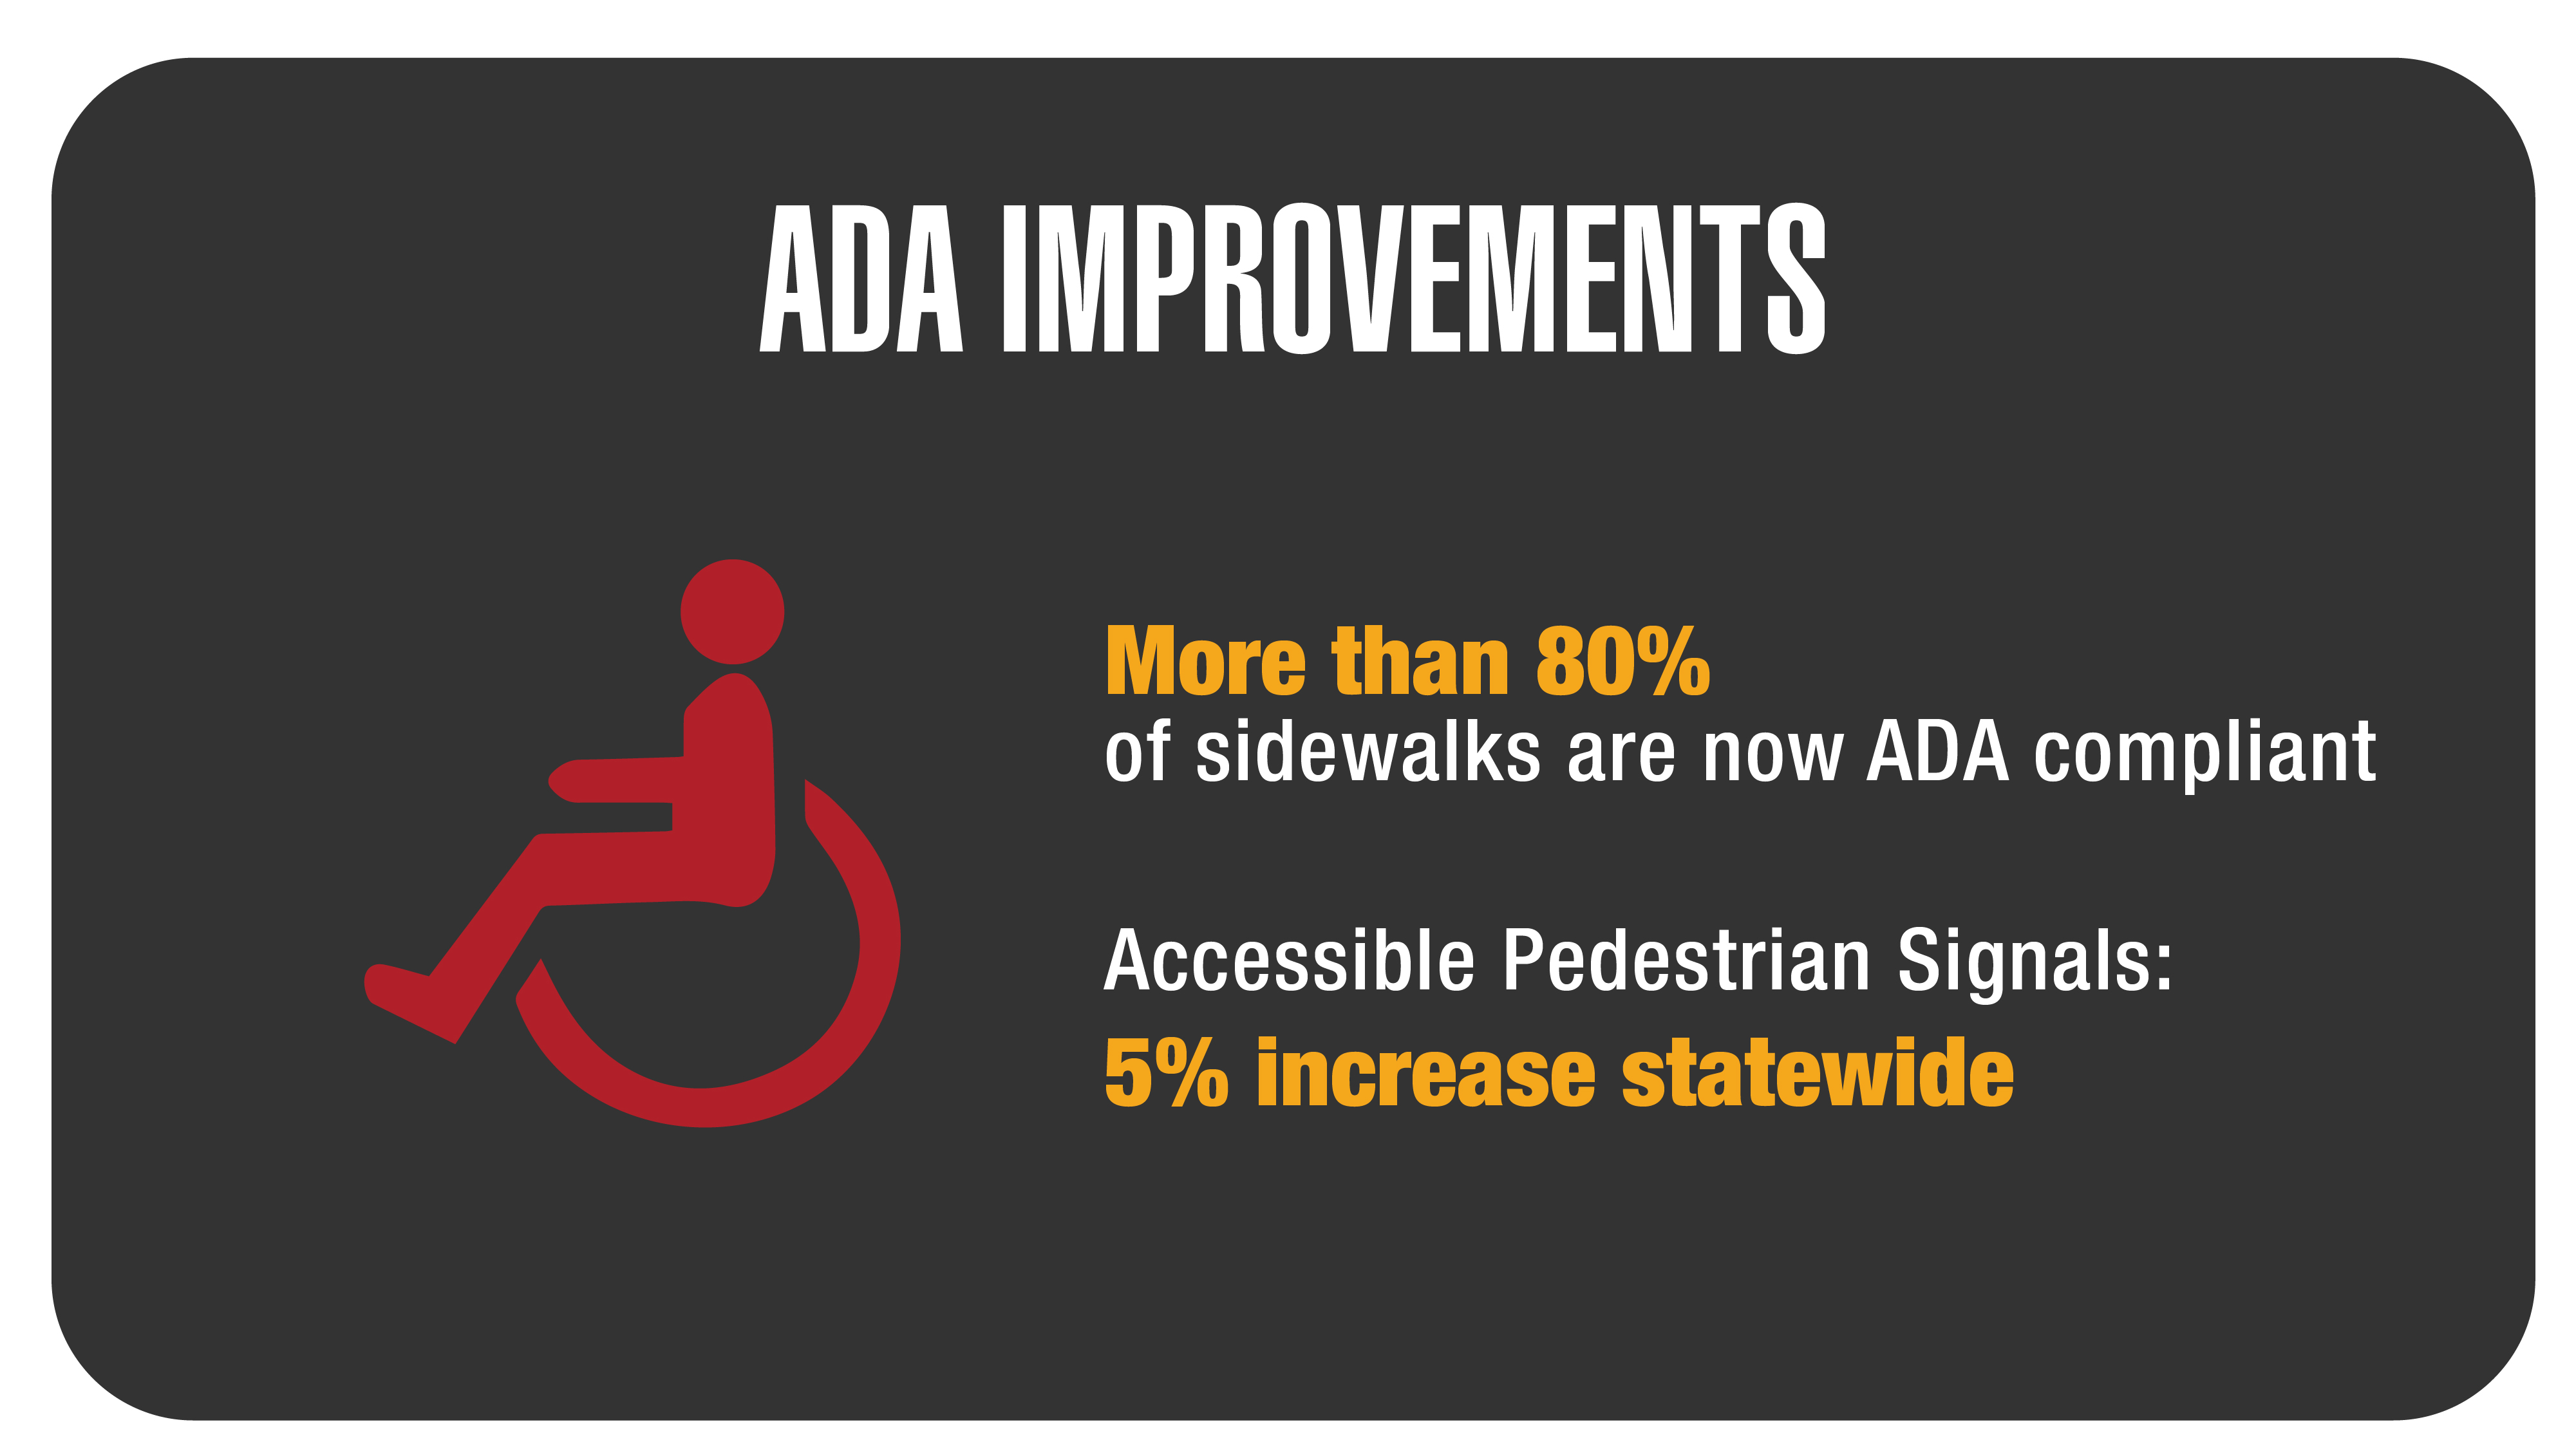 ADA Improvements